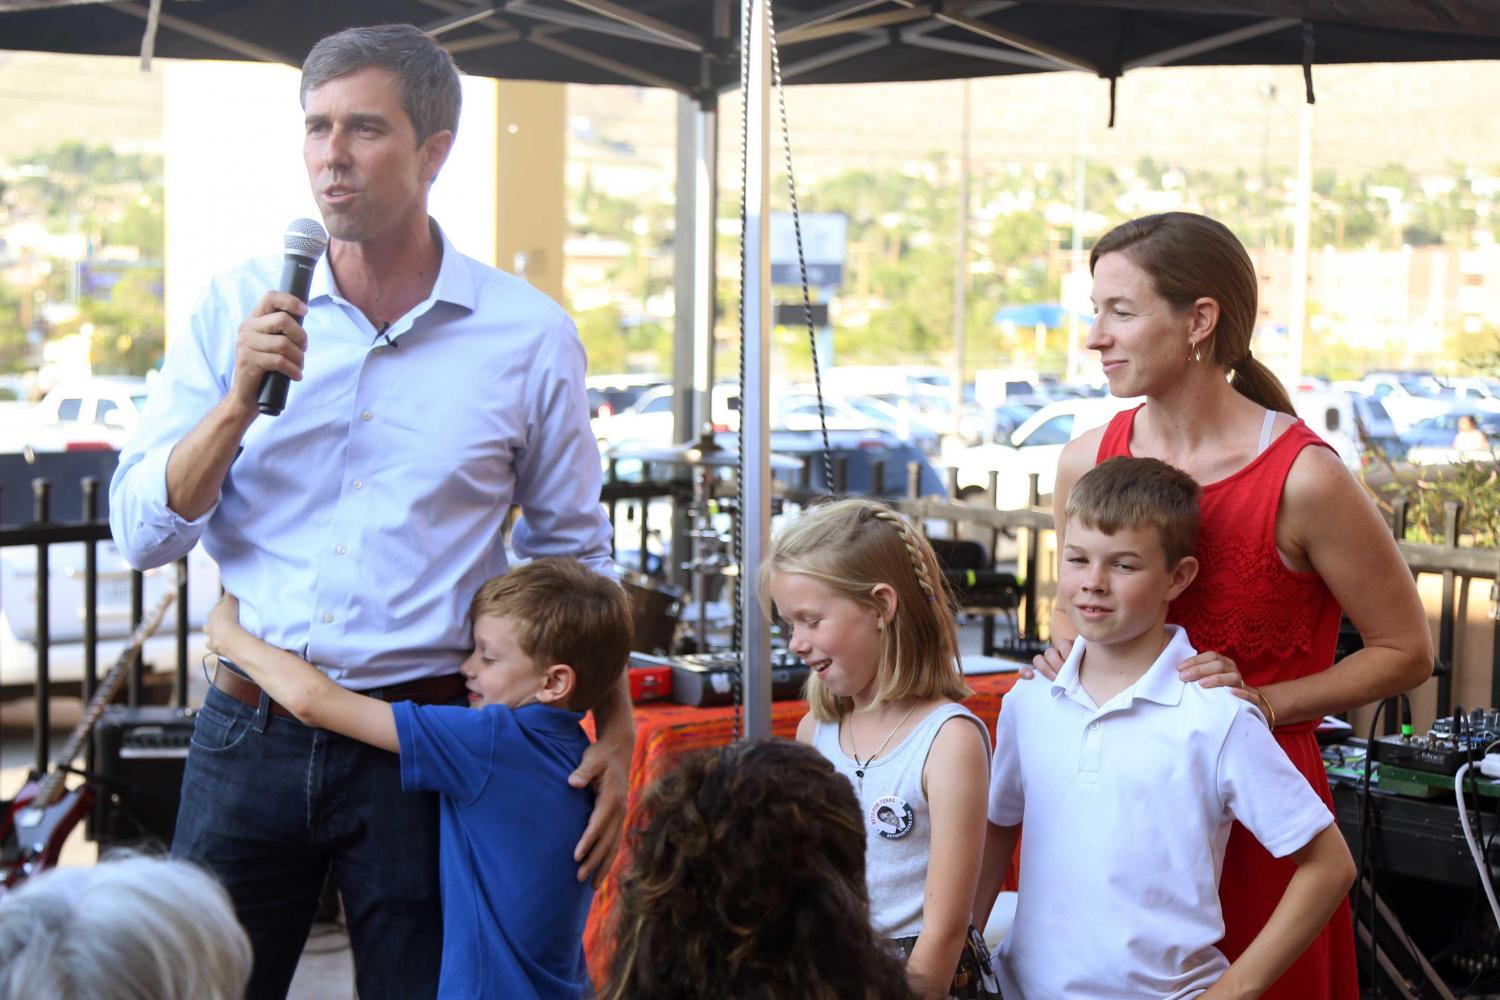 Congressman+O%27Rourke+speaks+on+SB+4+and+coming+home+as+he+hosts+Hurricane+Harvey+relief+event